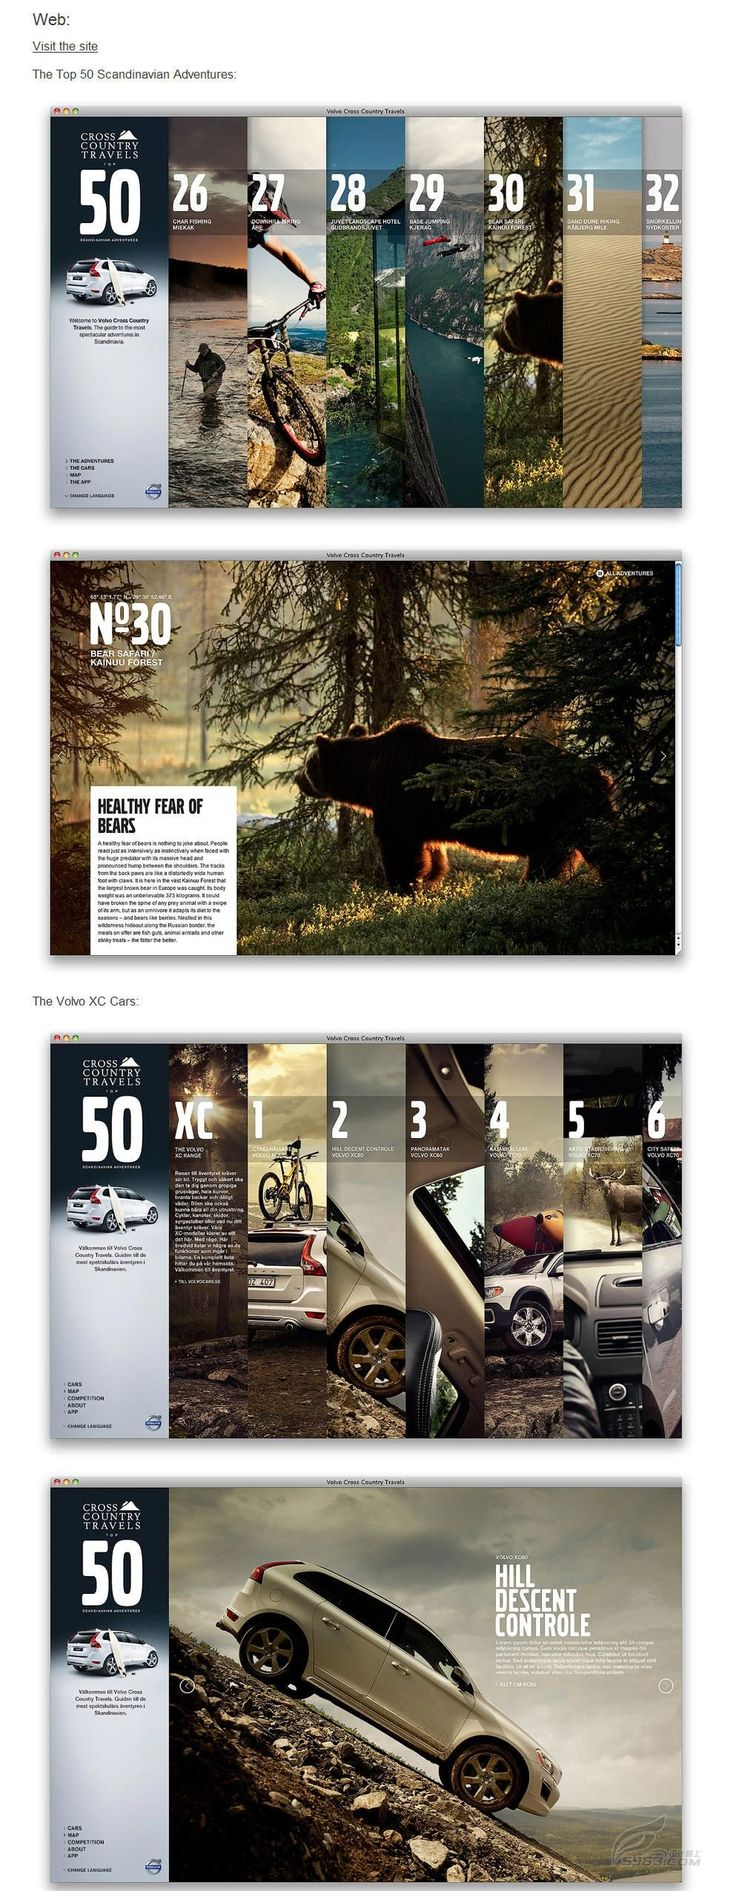 Beautiful vertical grid design, may be it can be used for a Top 10 article layout.